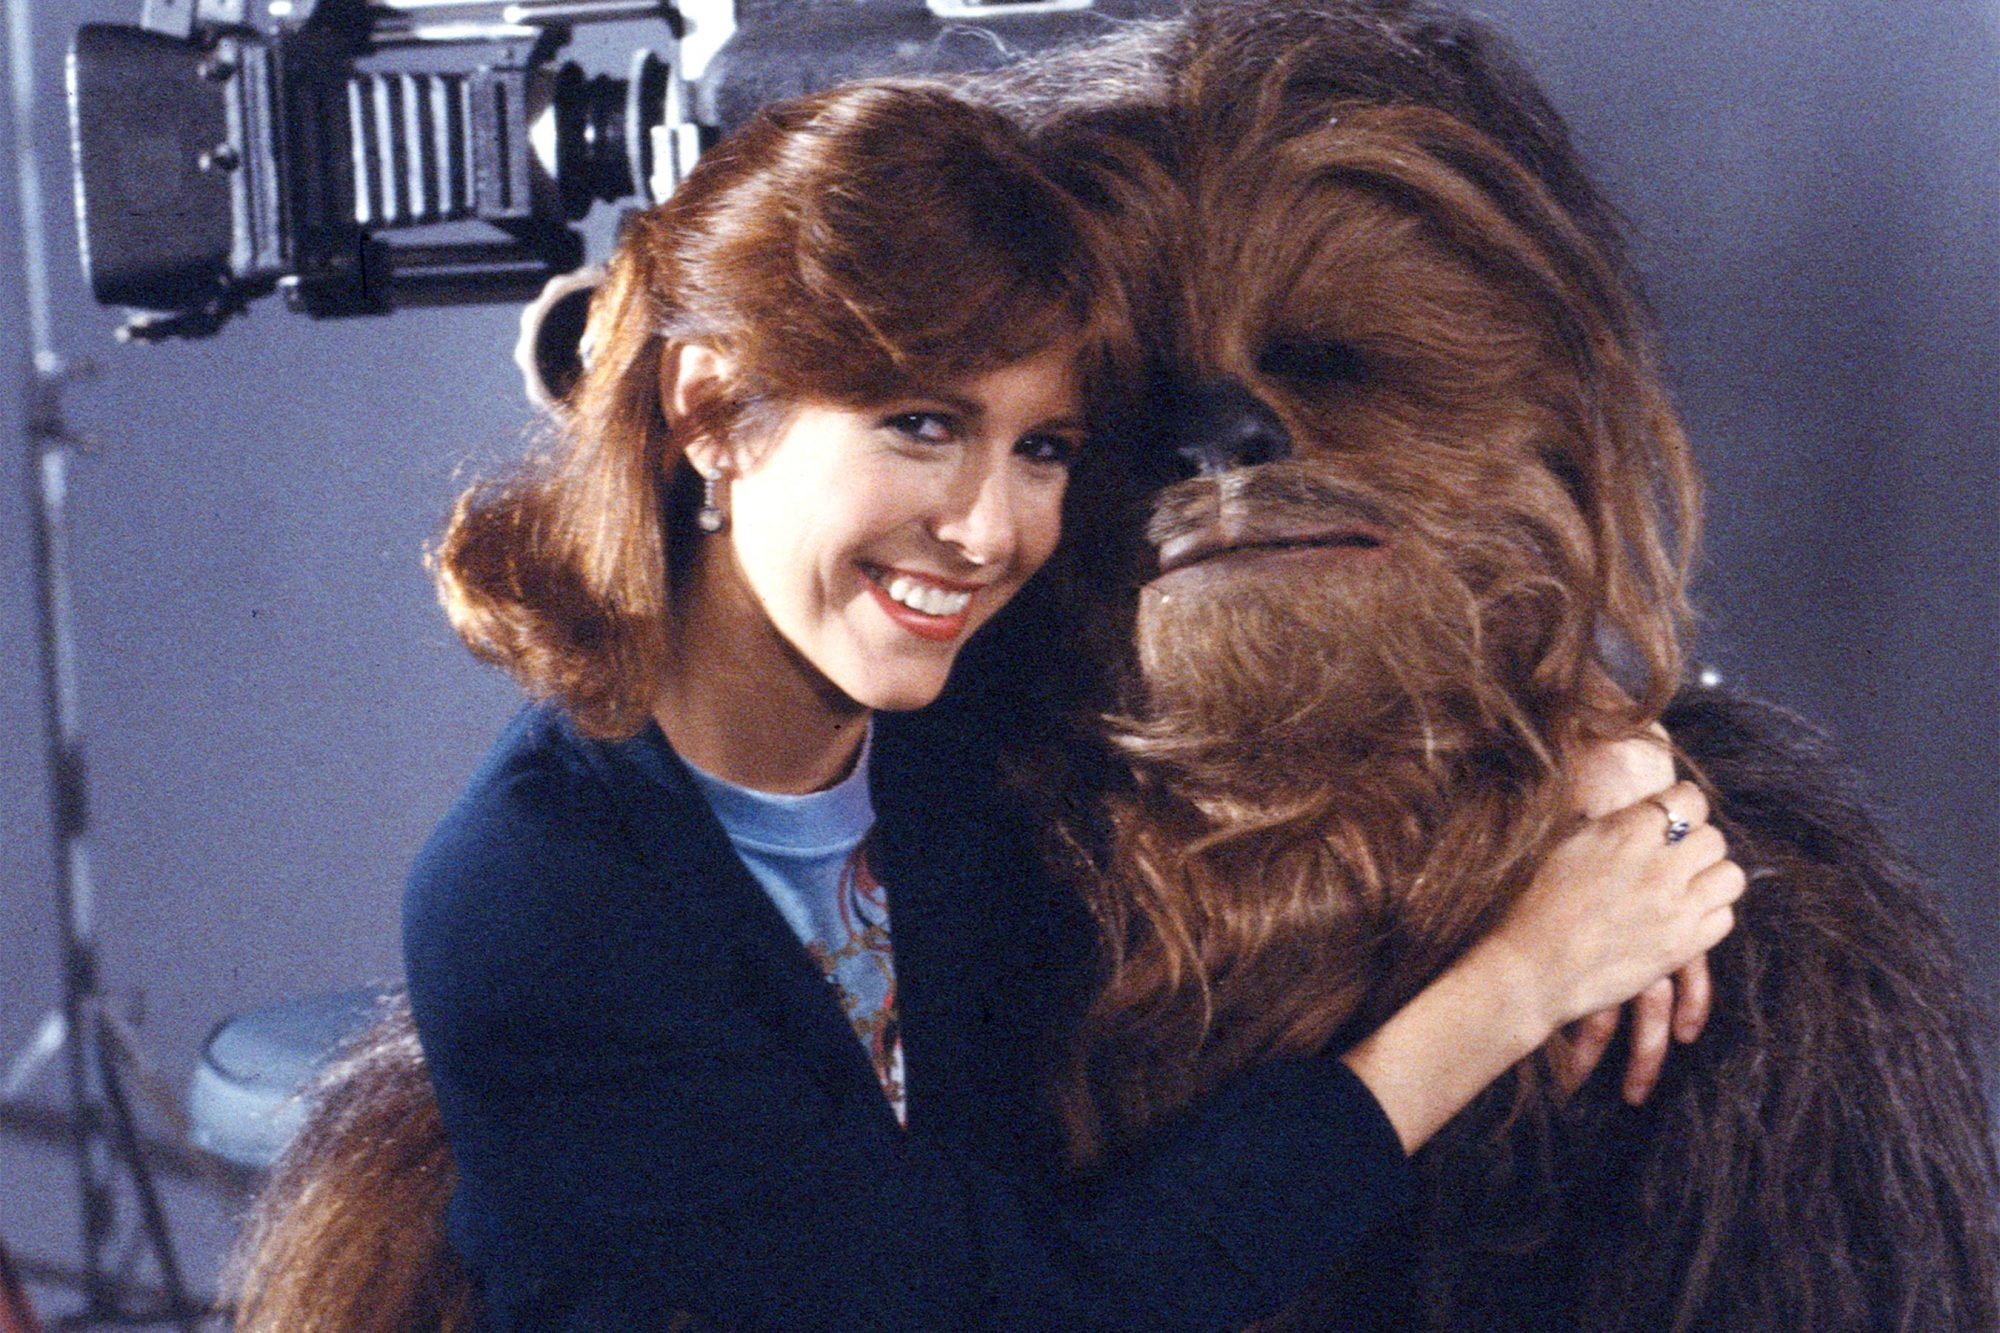 Peter Mayhew and Carrie Fisher